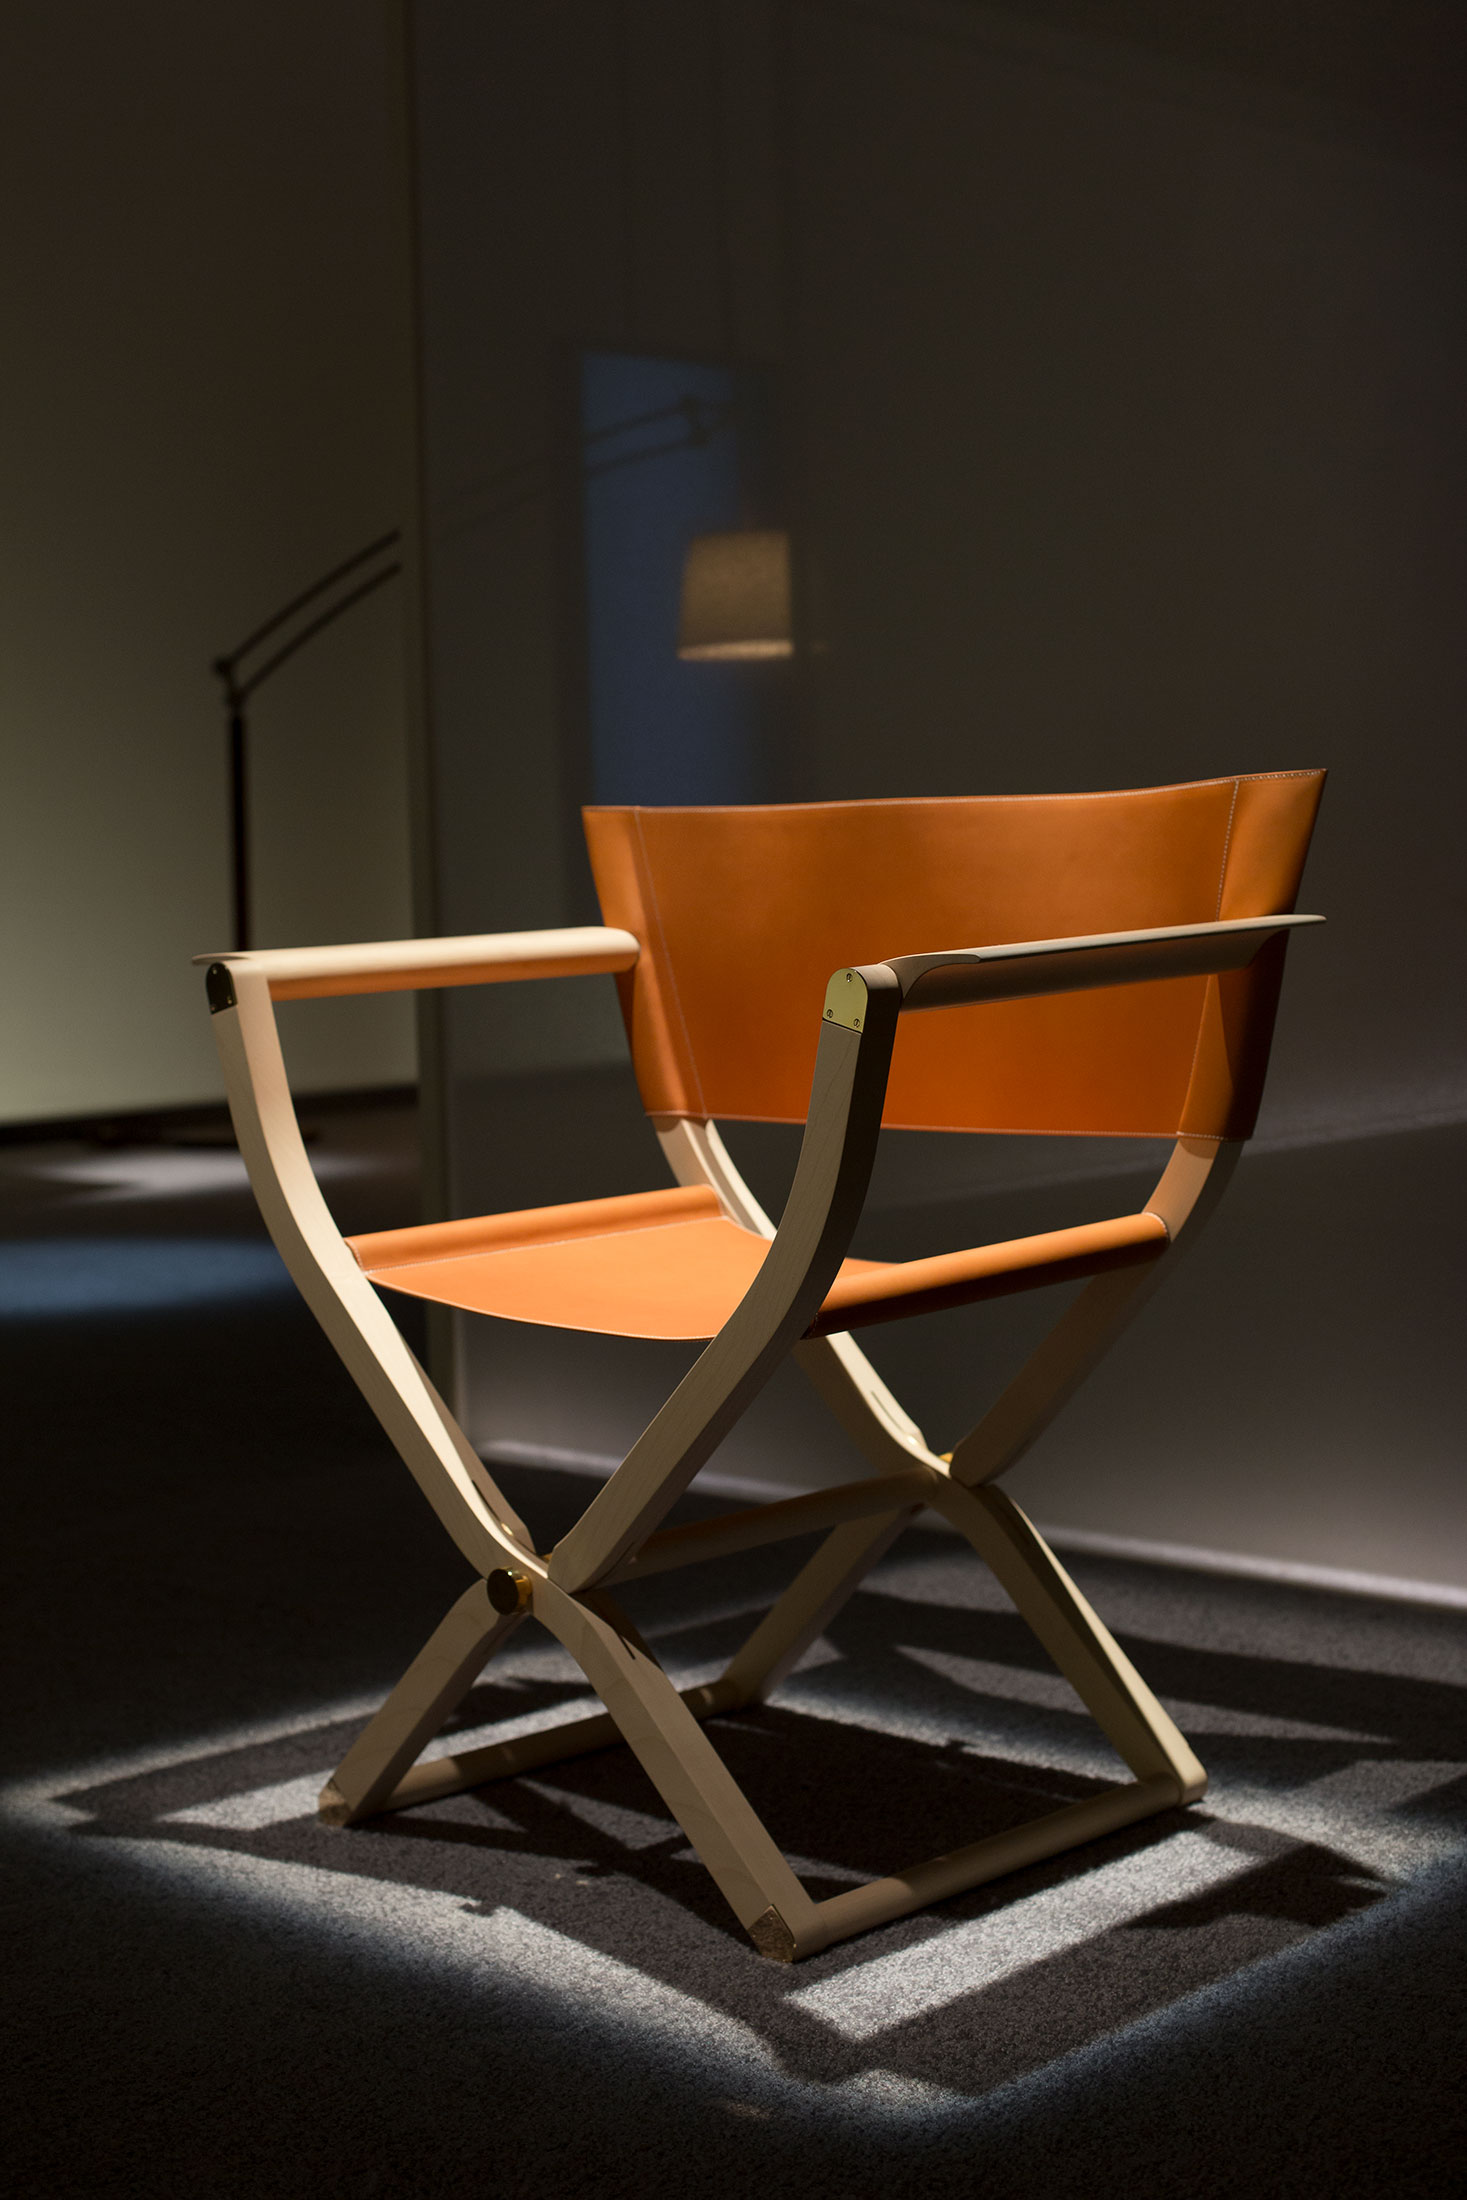 The Pippa folding armchair in natural maple and cowhide, designed by Rena Dumas and Peter Coles.